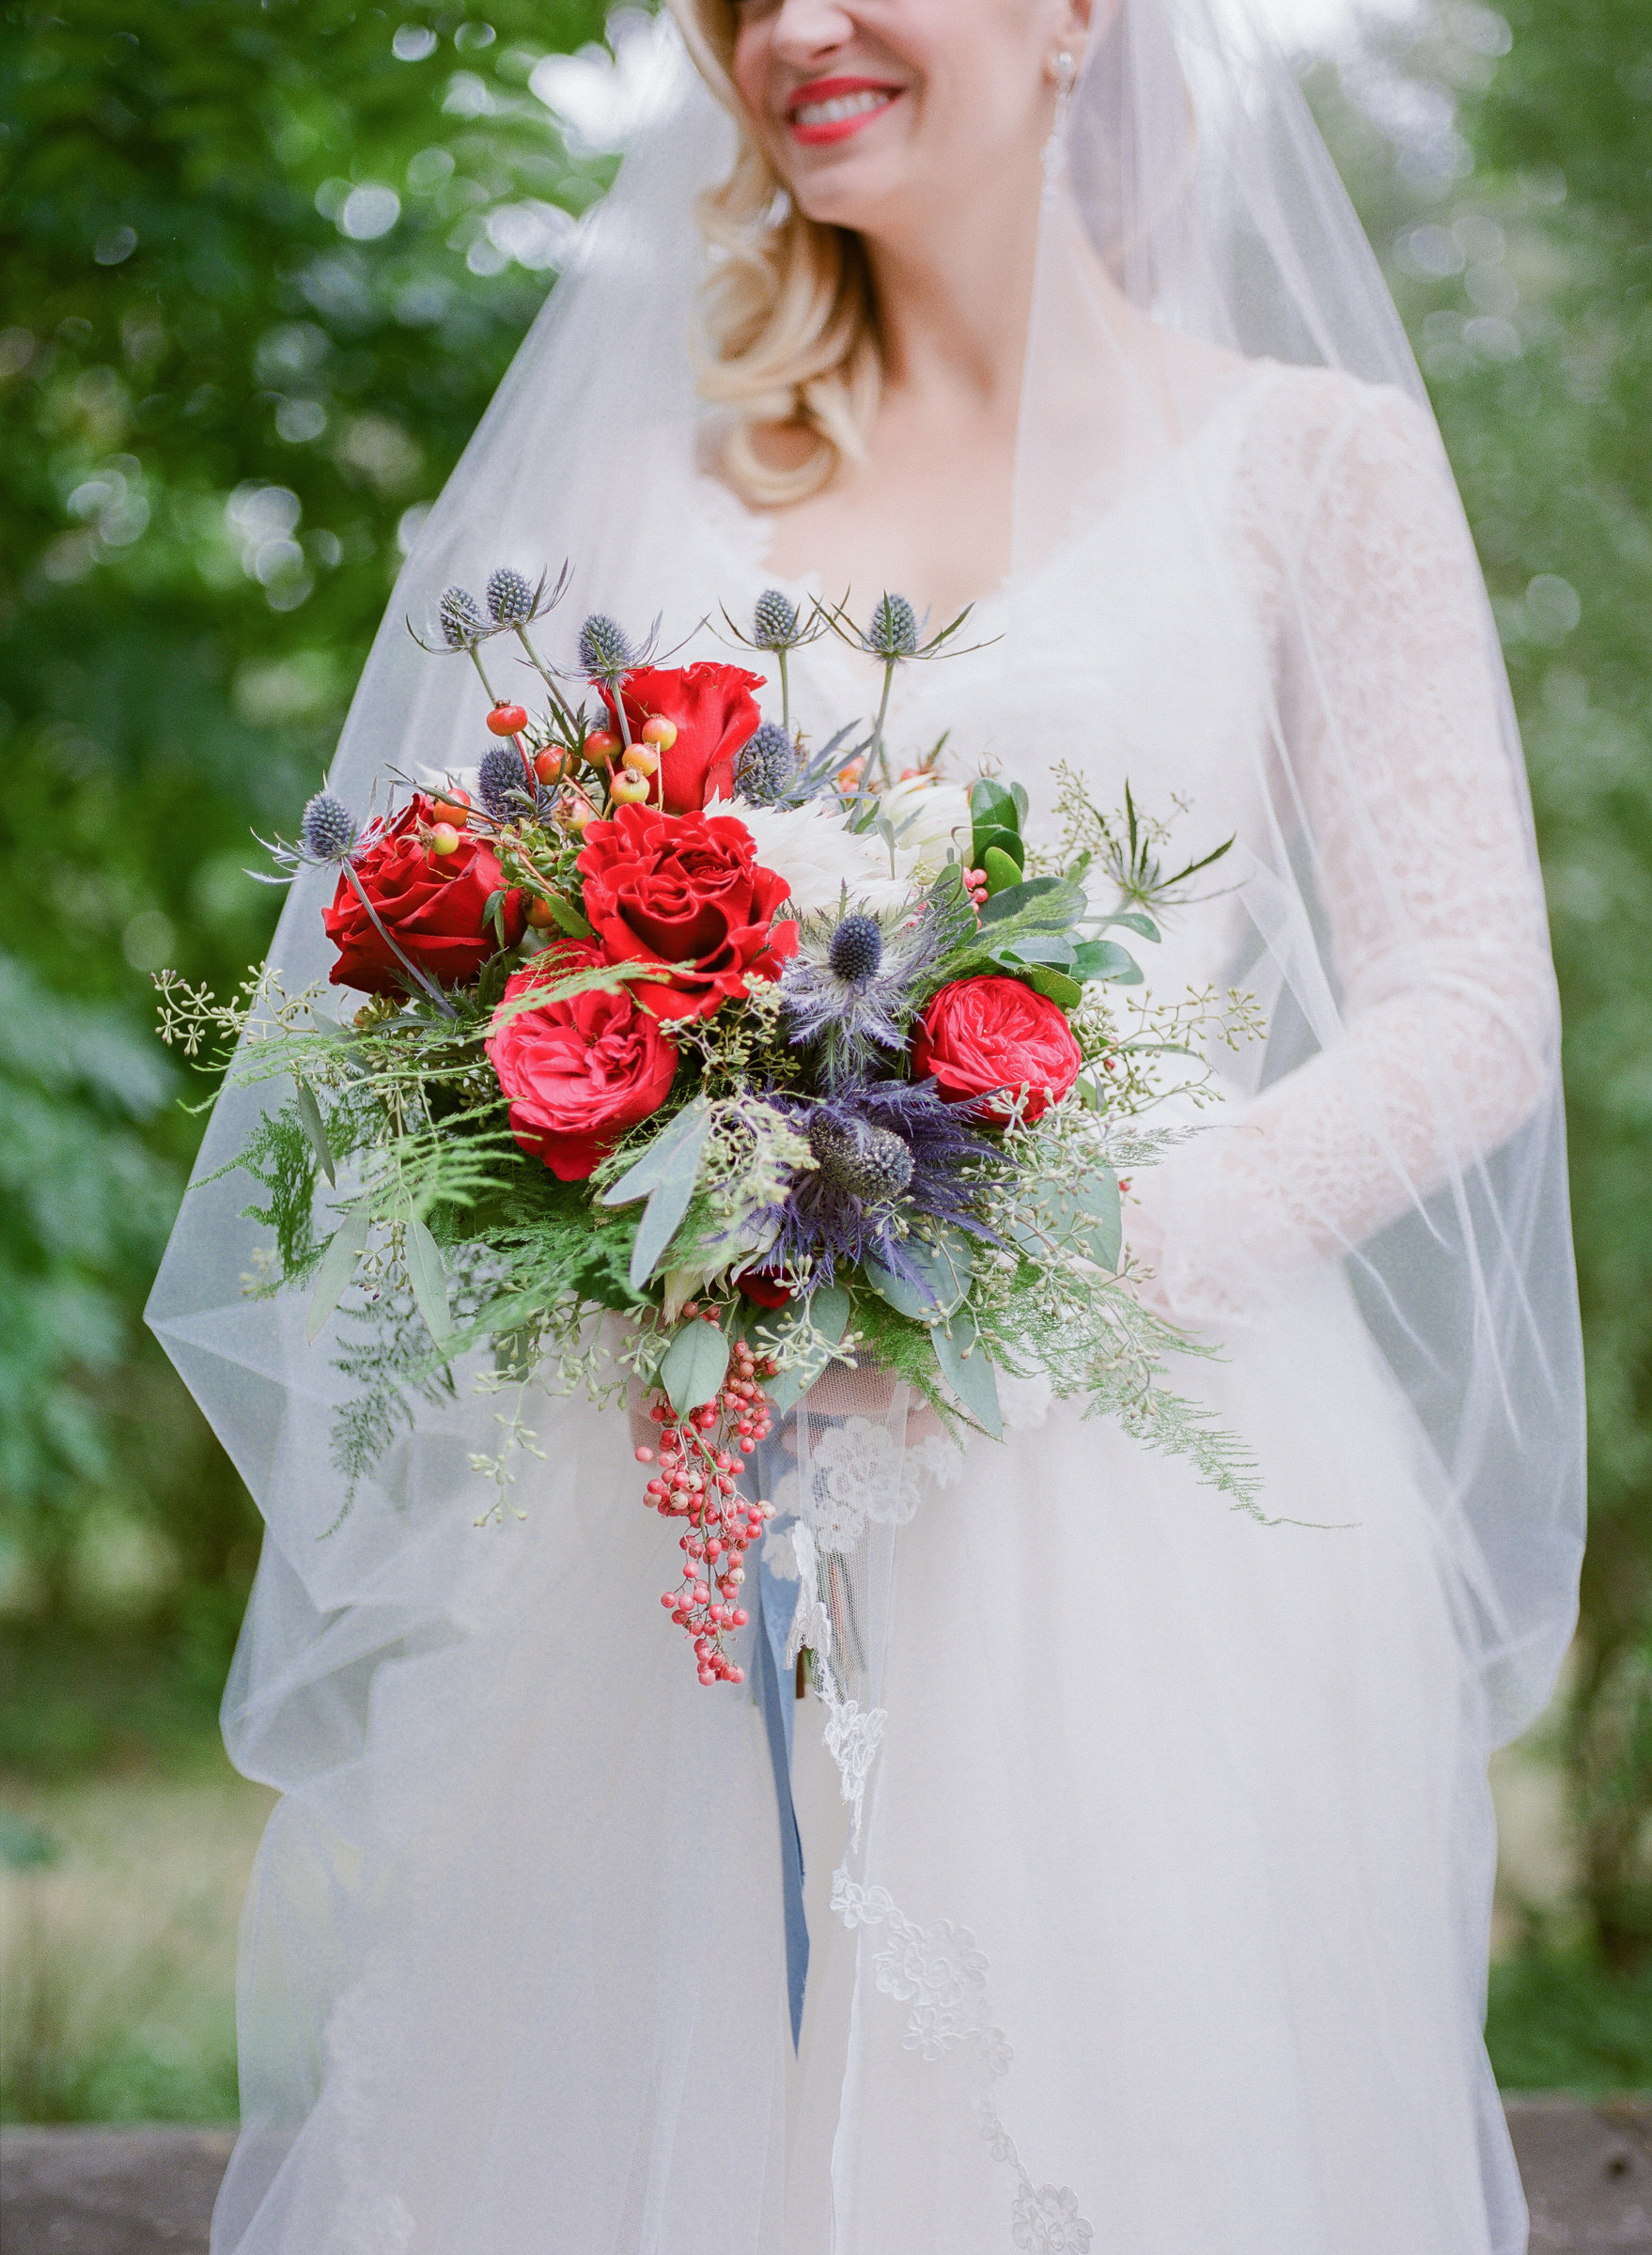 Bride with red rose and thistle cascading bouquet - photo by Corbin Gurkin